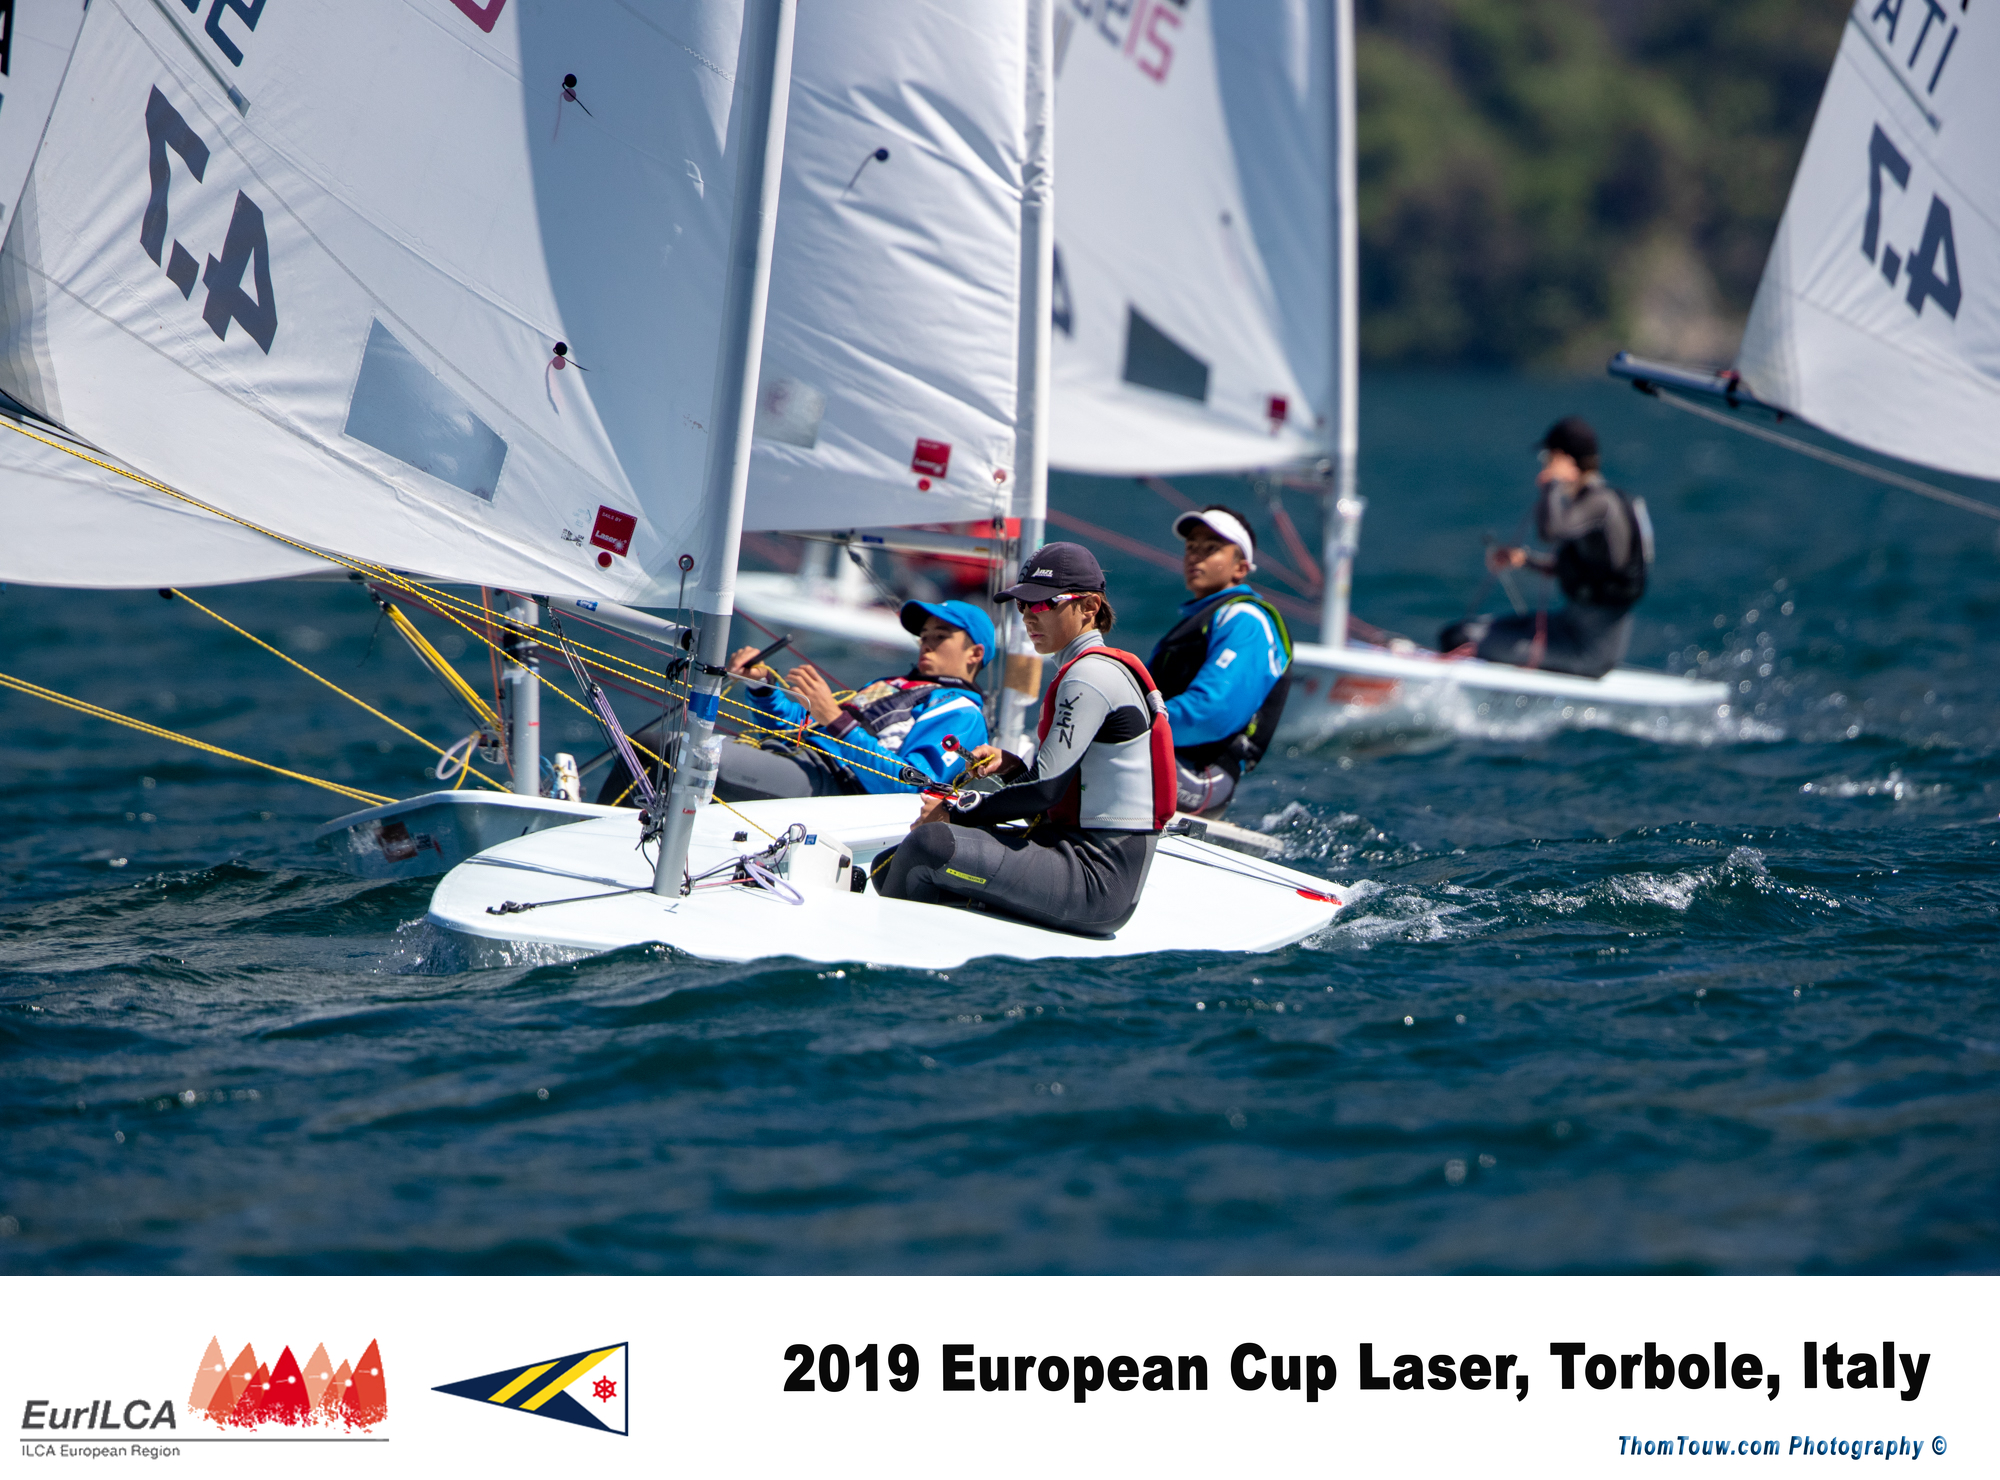 Laser - Europacup 2019 - Act 4 - Torbole ITA - Day 1